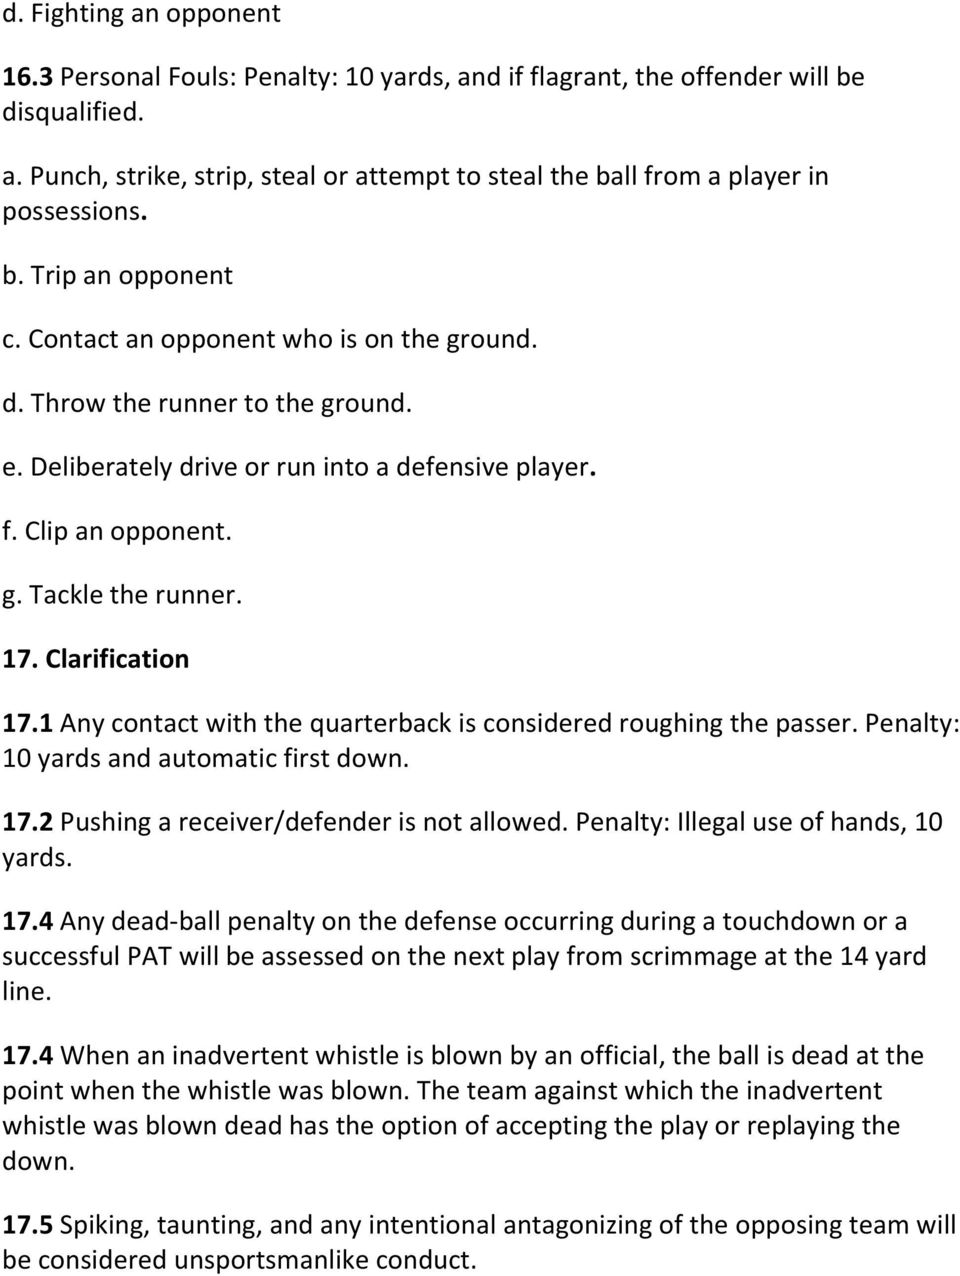 Clarification 17.1 Any contact with the quarterback is considered roughing the passer. Penalty: 10 yards and automatic first down. 17.2 Pushing a receiver/defender is not allowed.